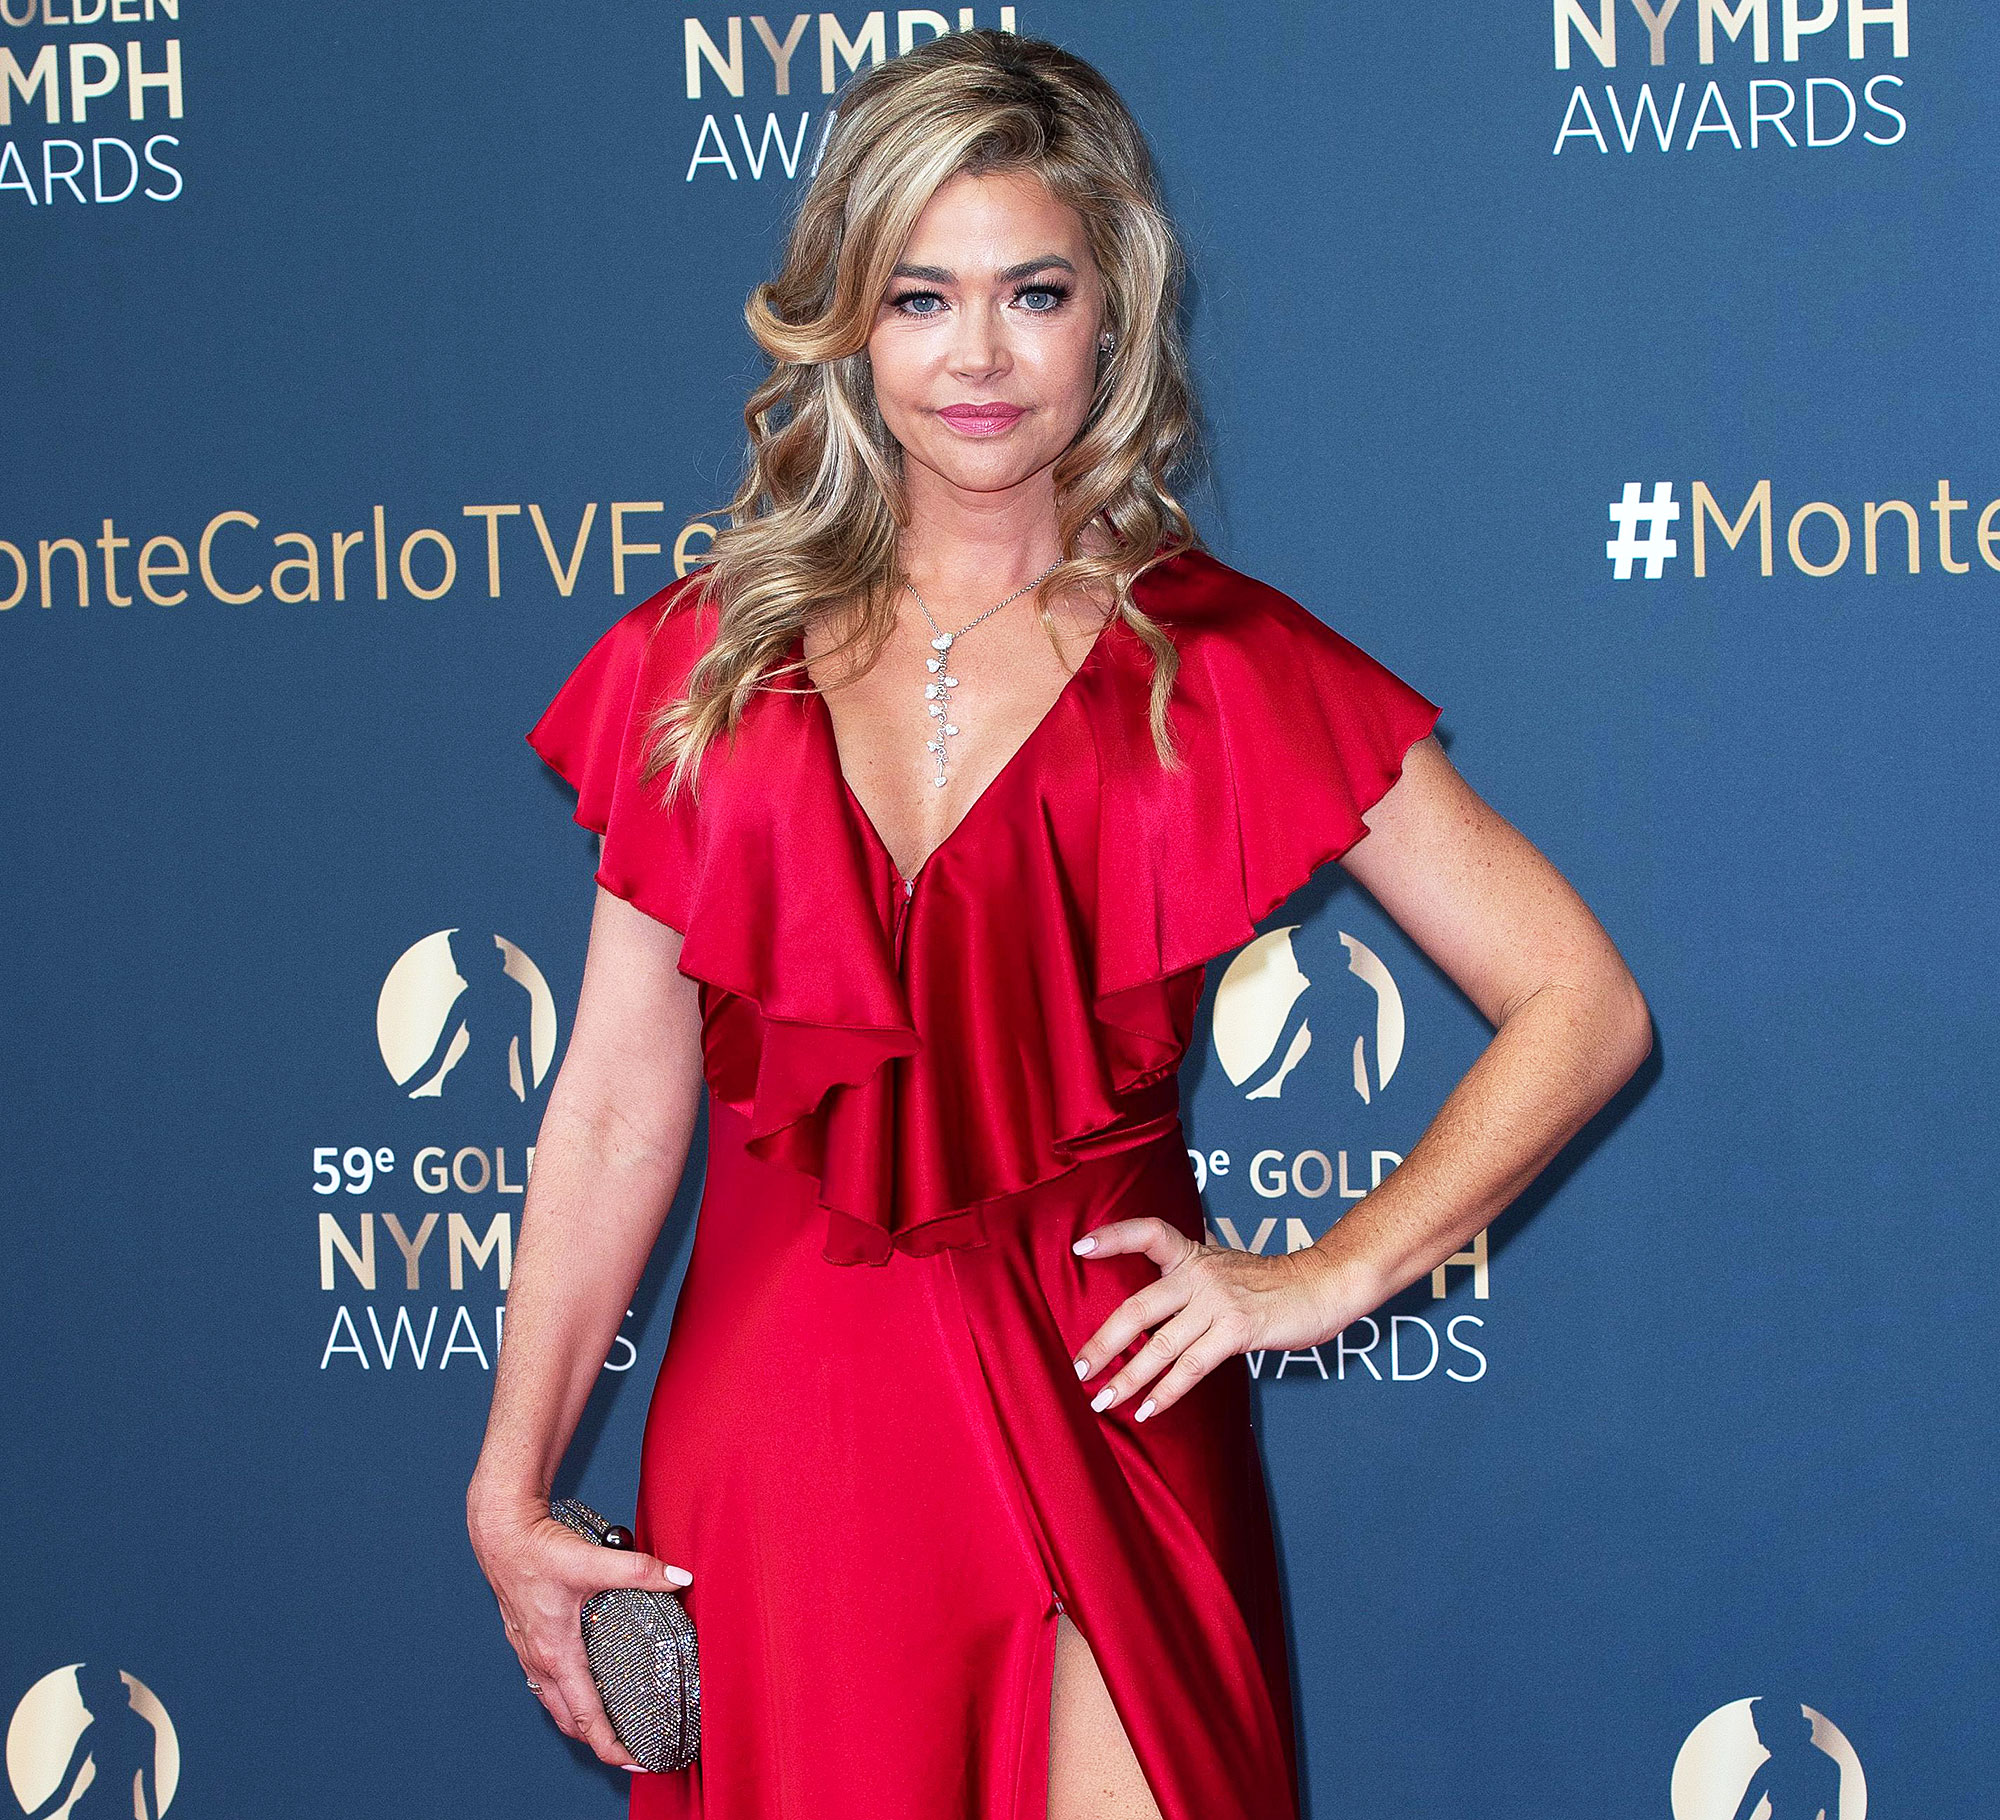 Denise Richards Attends the Monte Carlo Television Festival Honest With Daughters Told Them About Playboy Spread